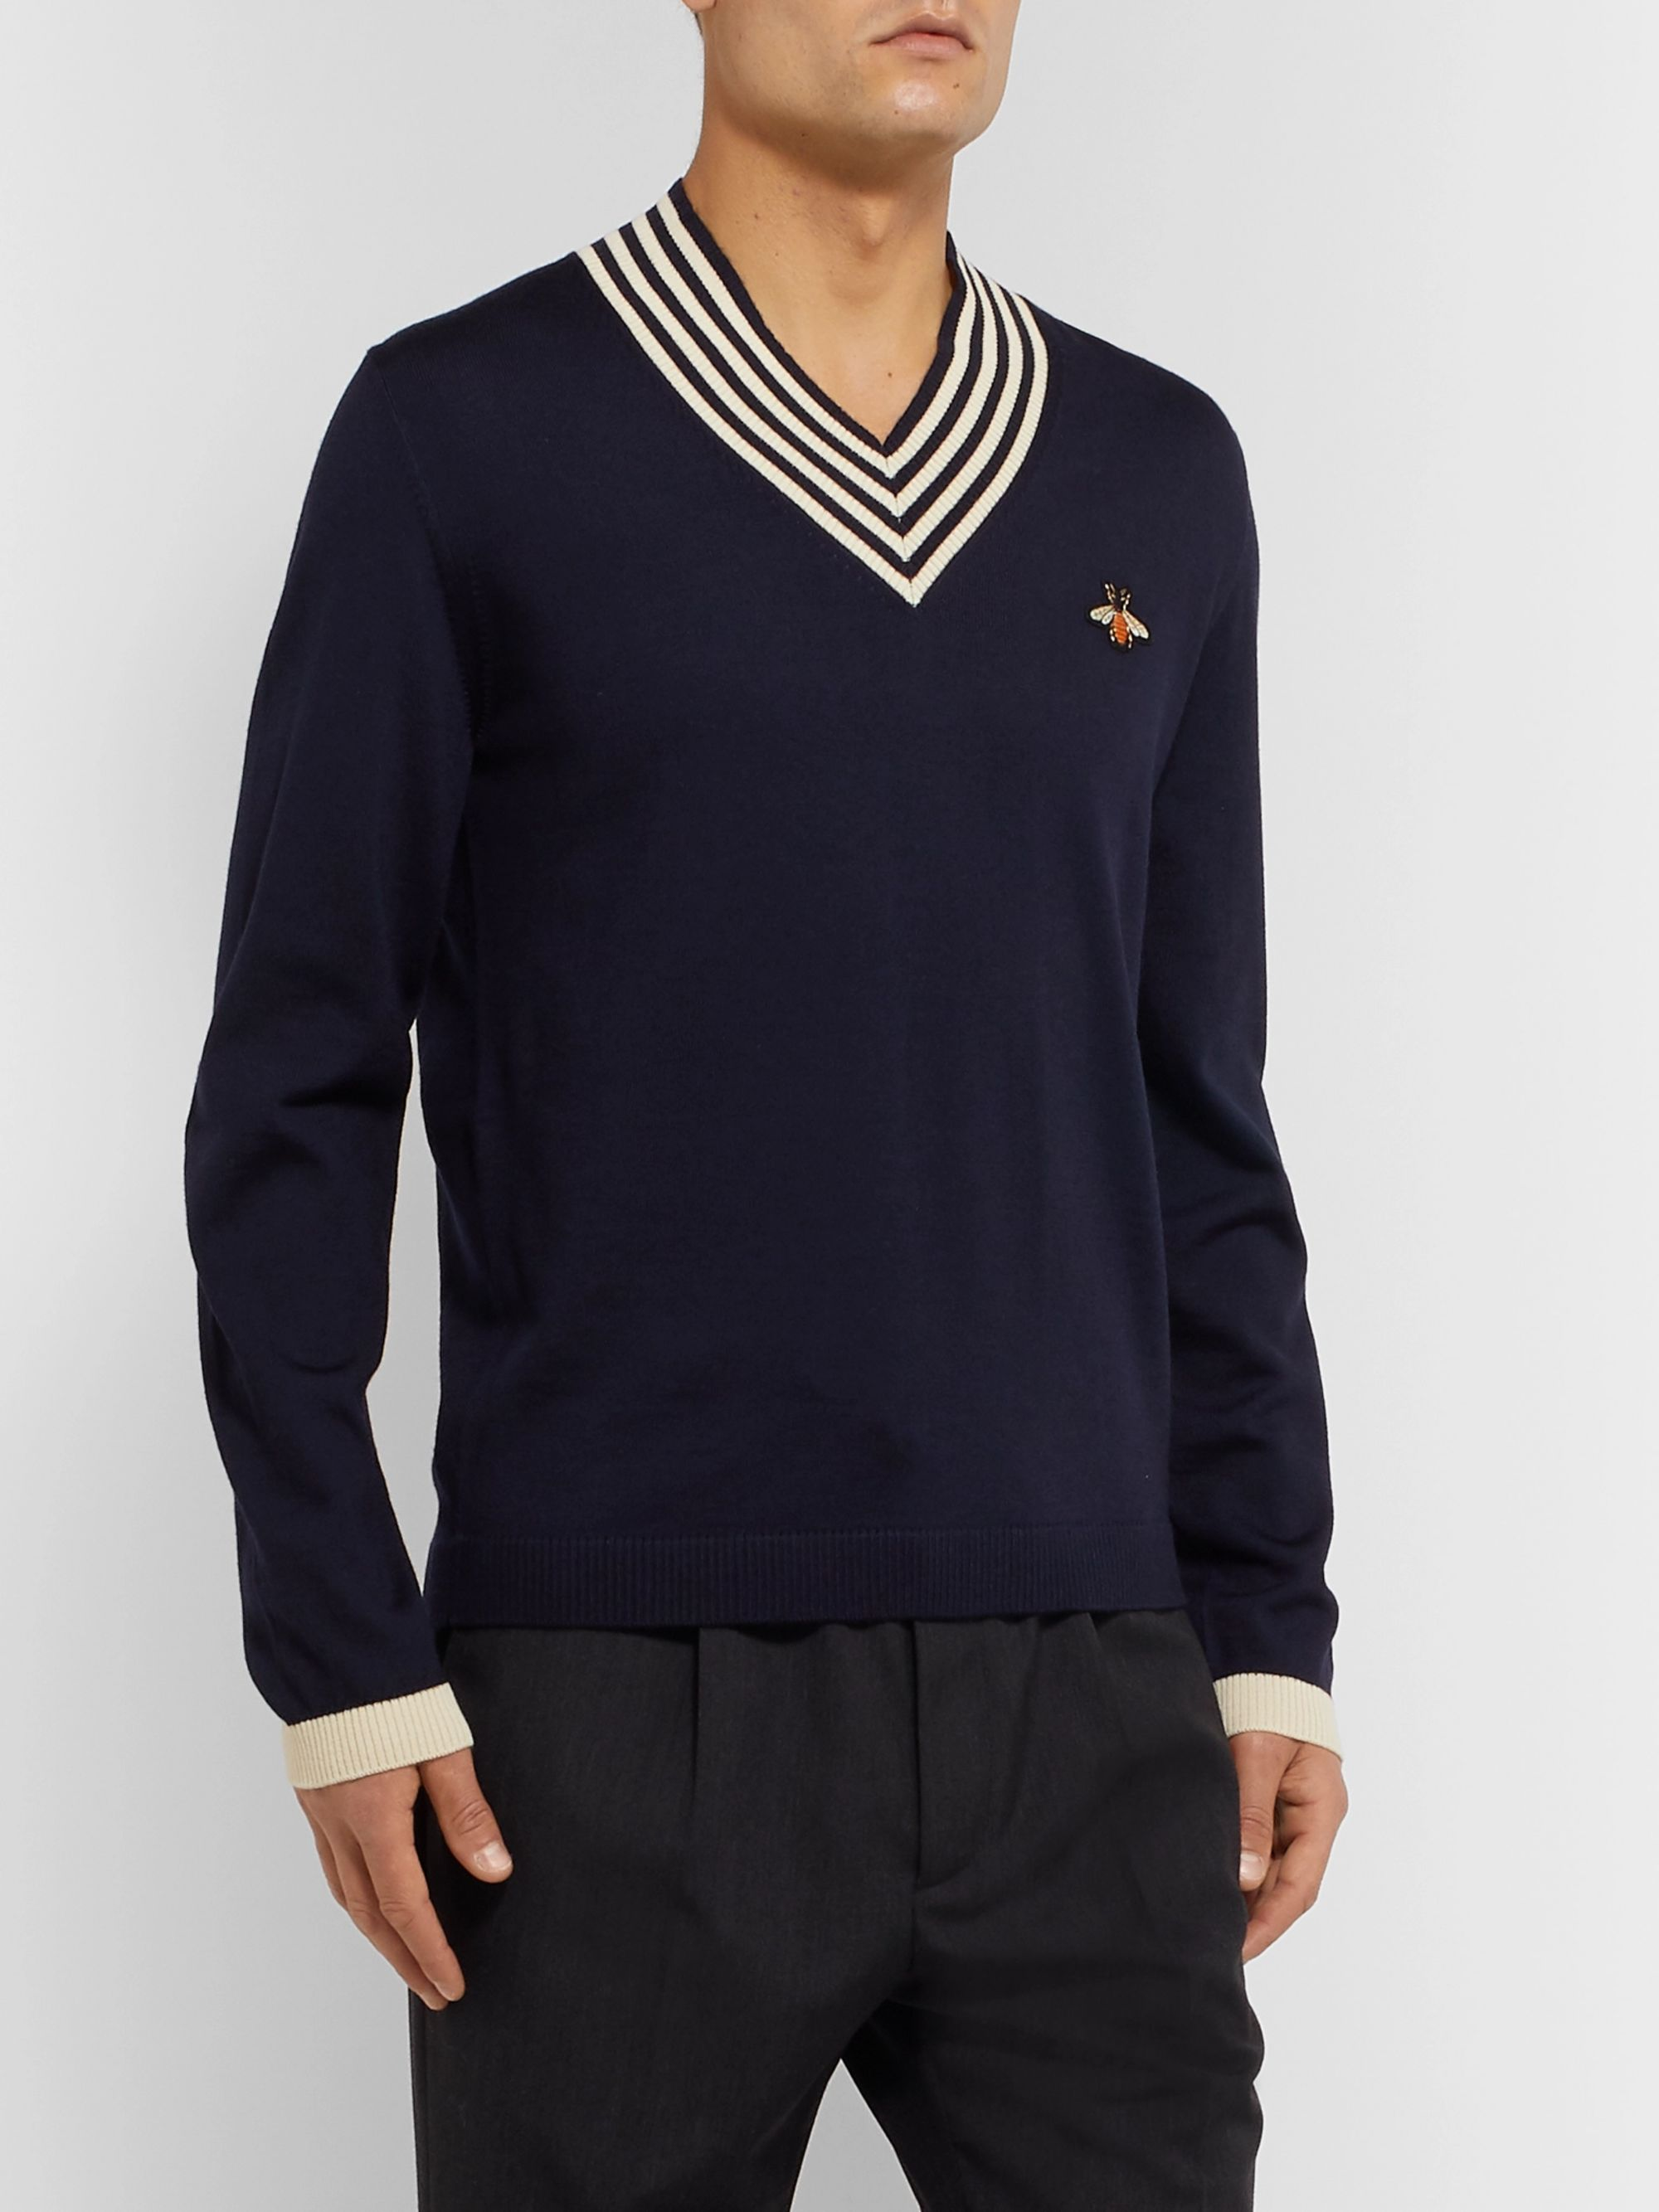 Gucci Appliquéd Striped Wool Sweater